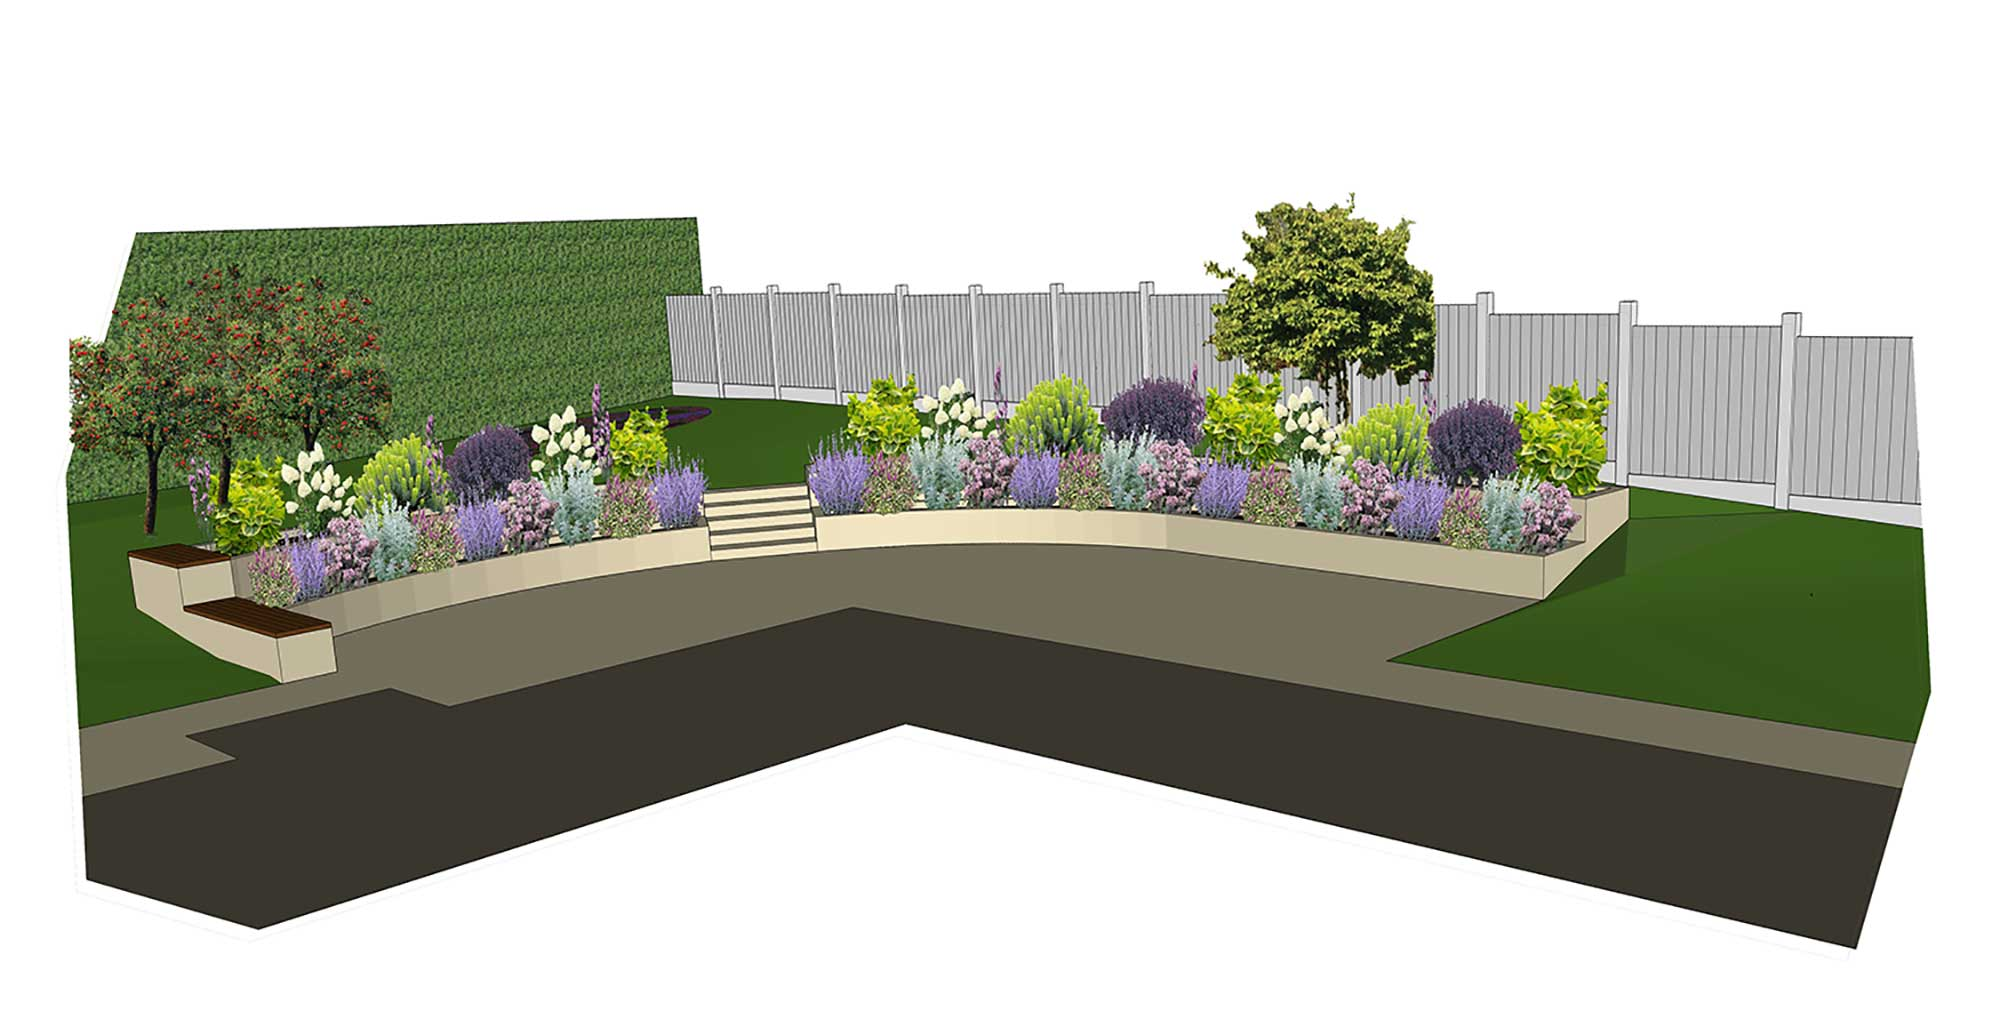 Rear garden design visualisation garden design layout for Garden planting designs